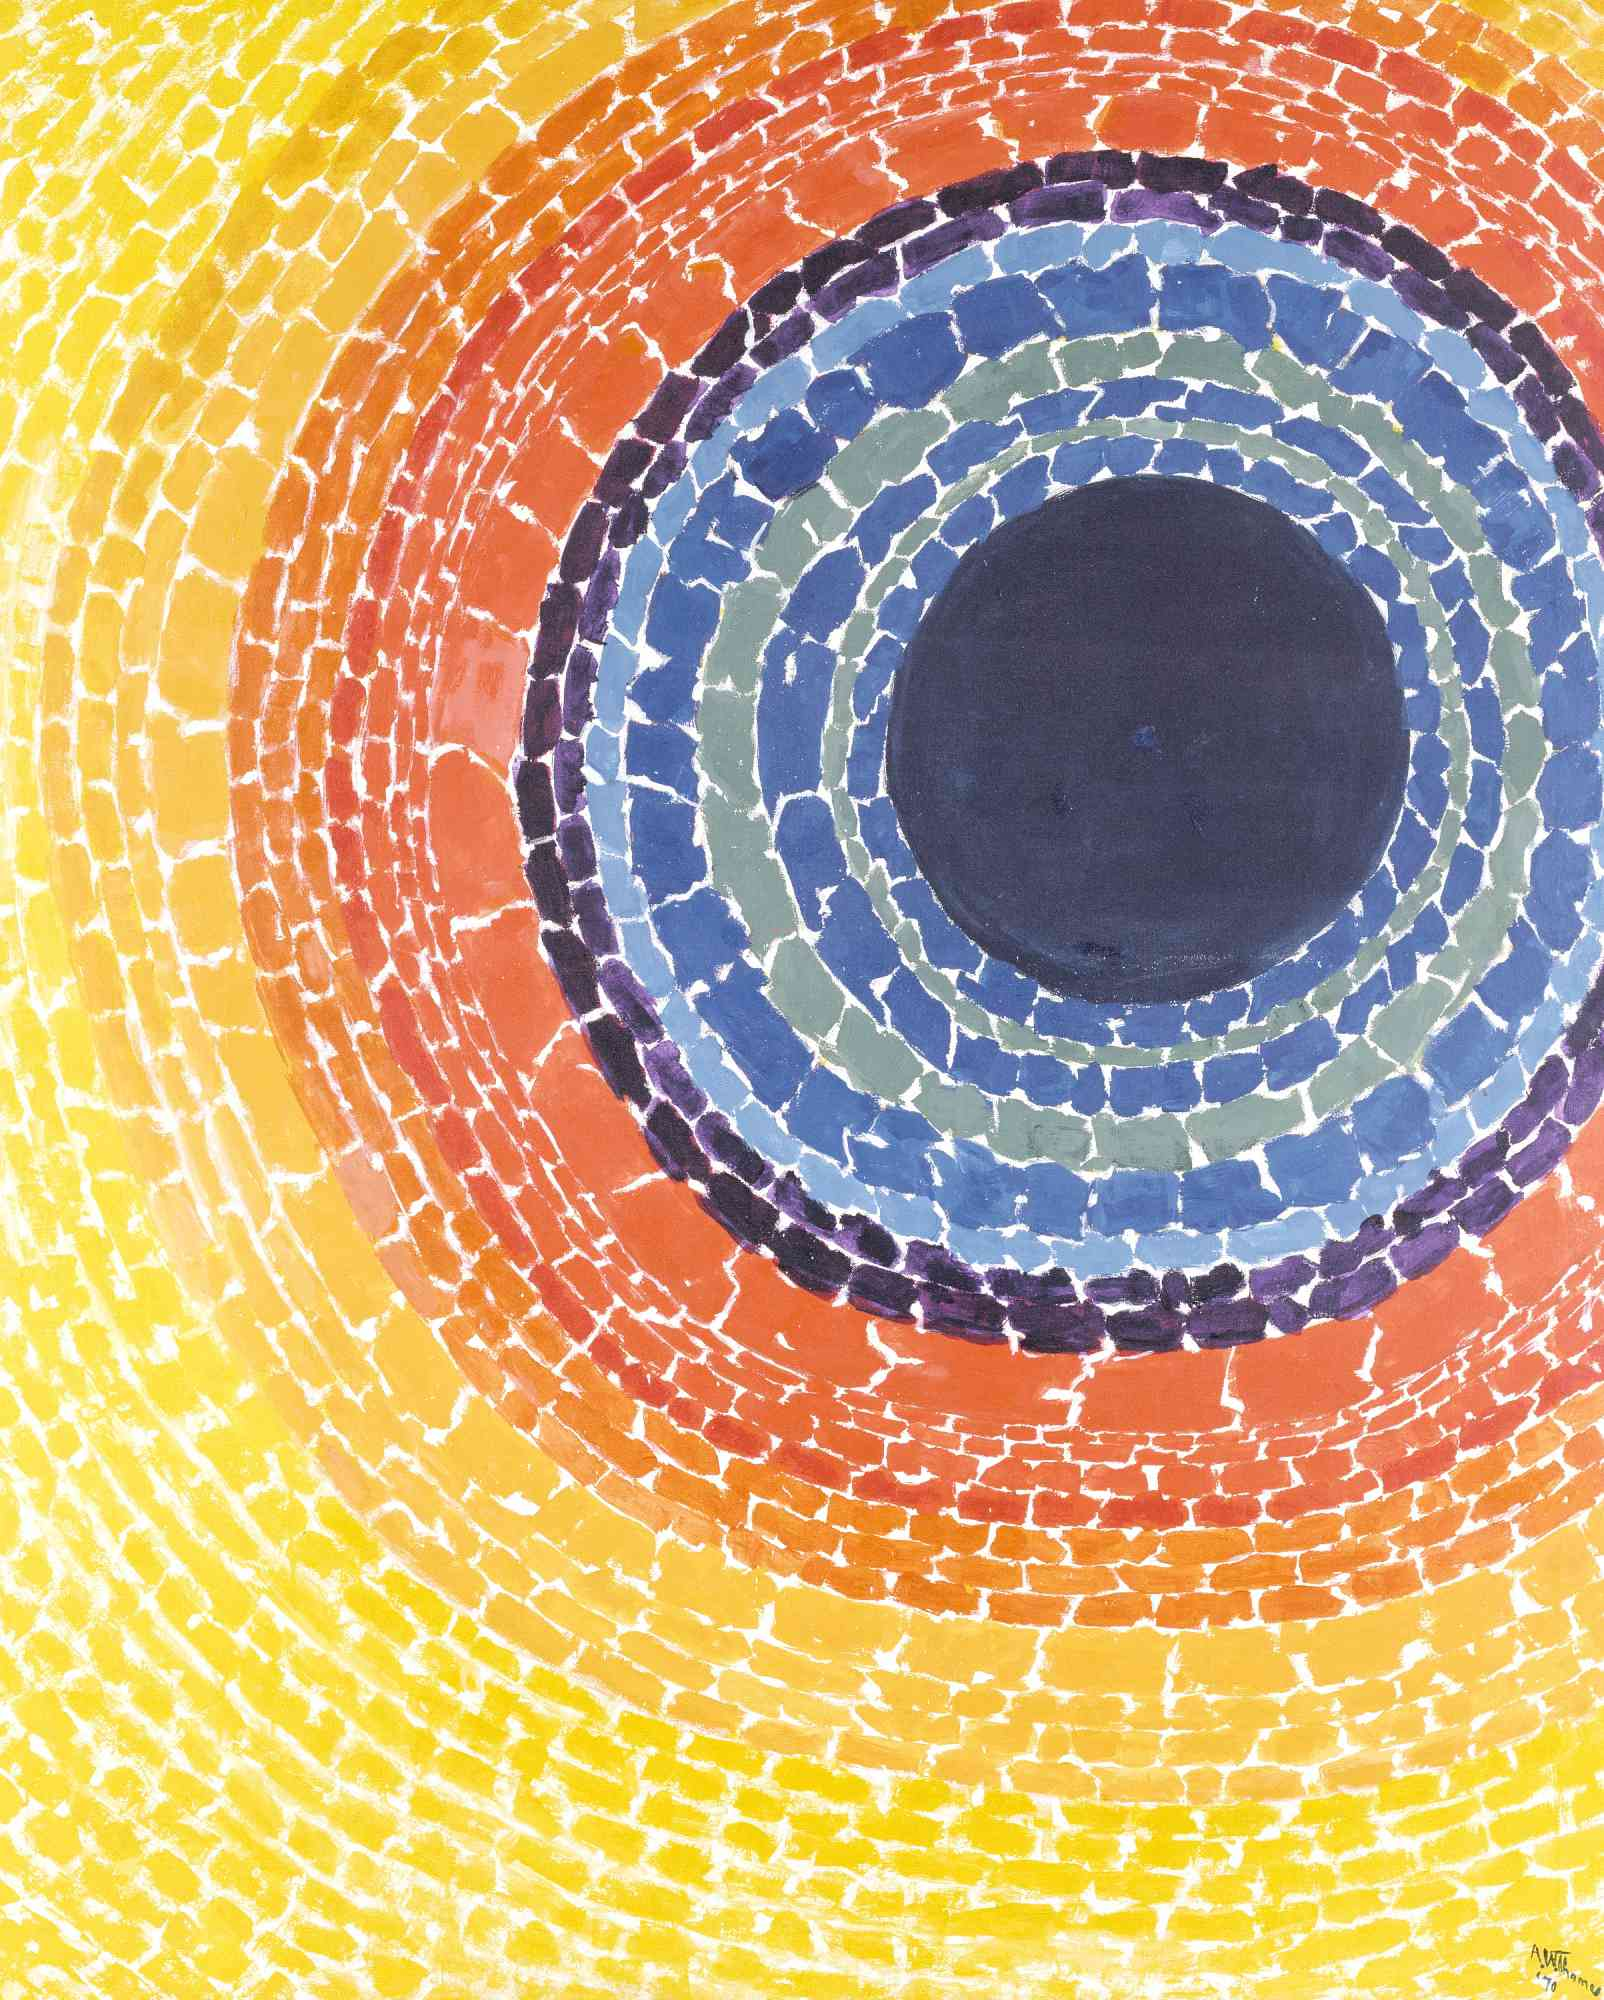 Concentric circle Abstraction with yellow outer layers, orange, purple, and blue inner circles